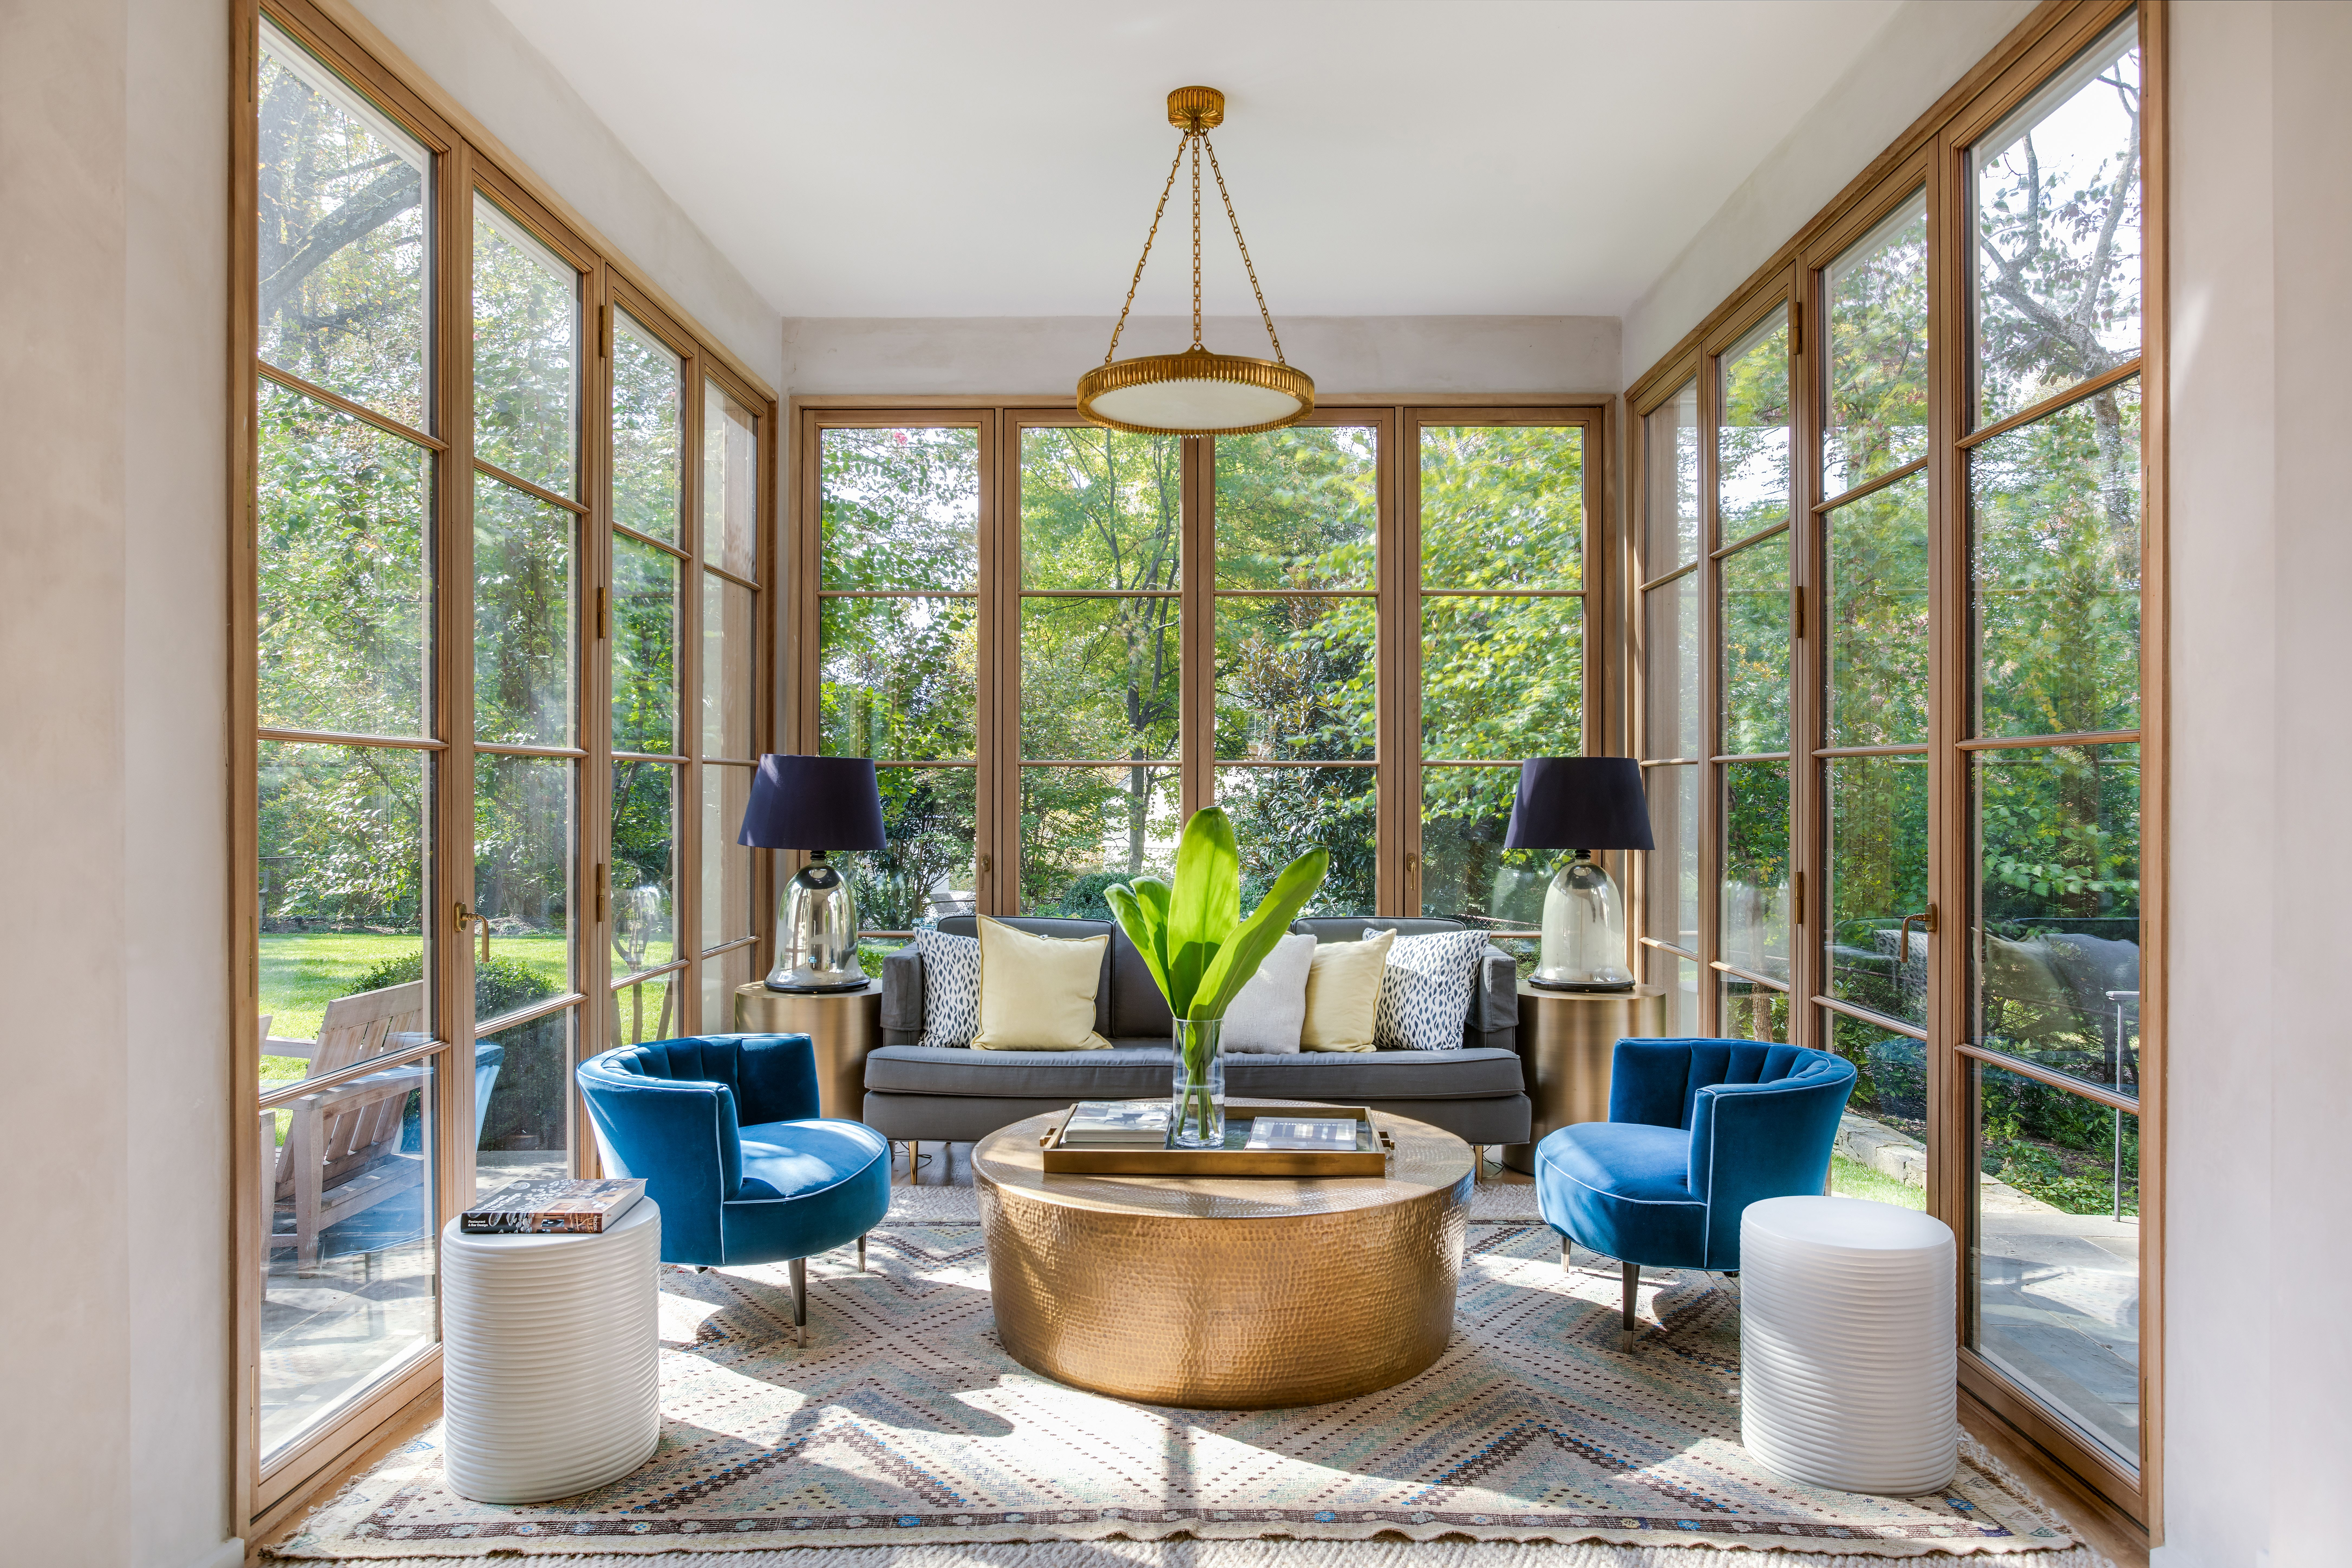 A Colonial home marries high-end design with laid-back style